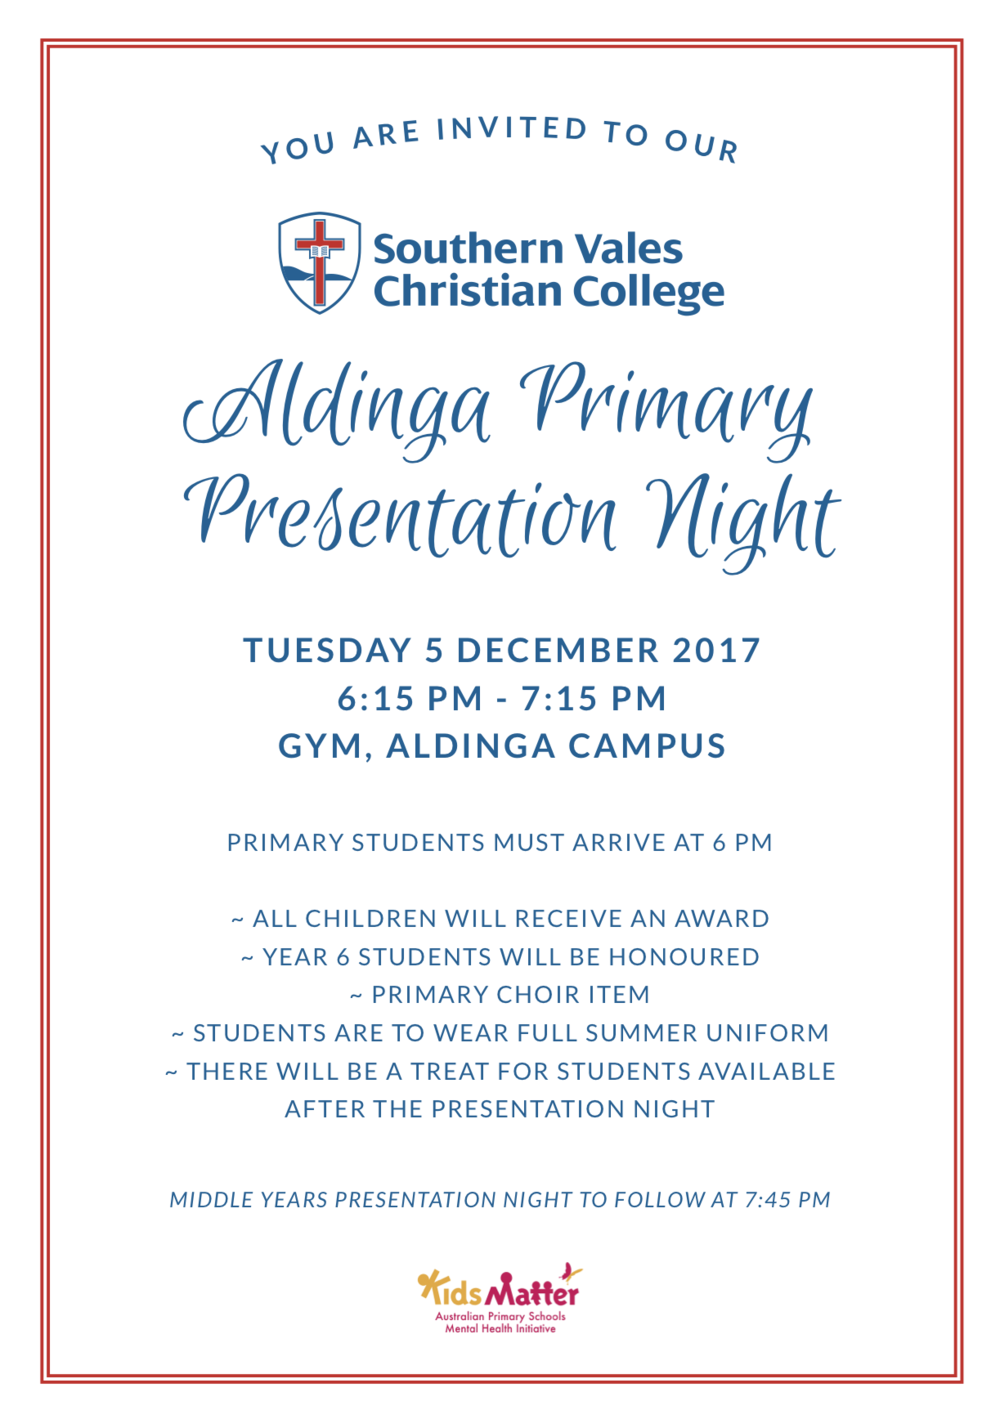 Primary Presentation Night Invitation ALD.png